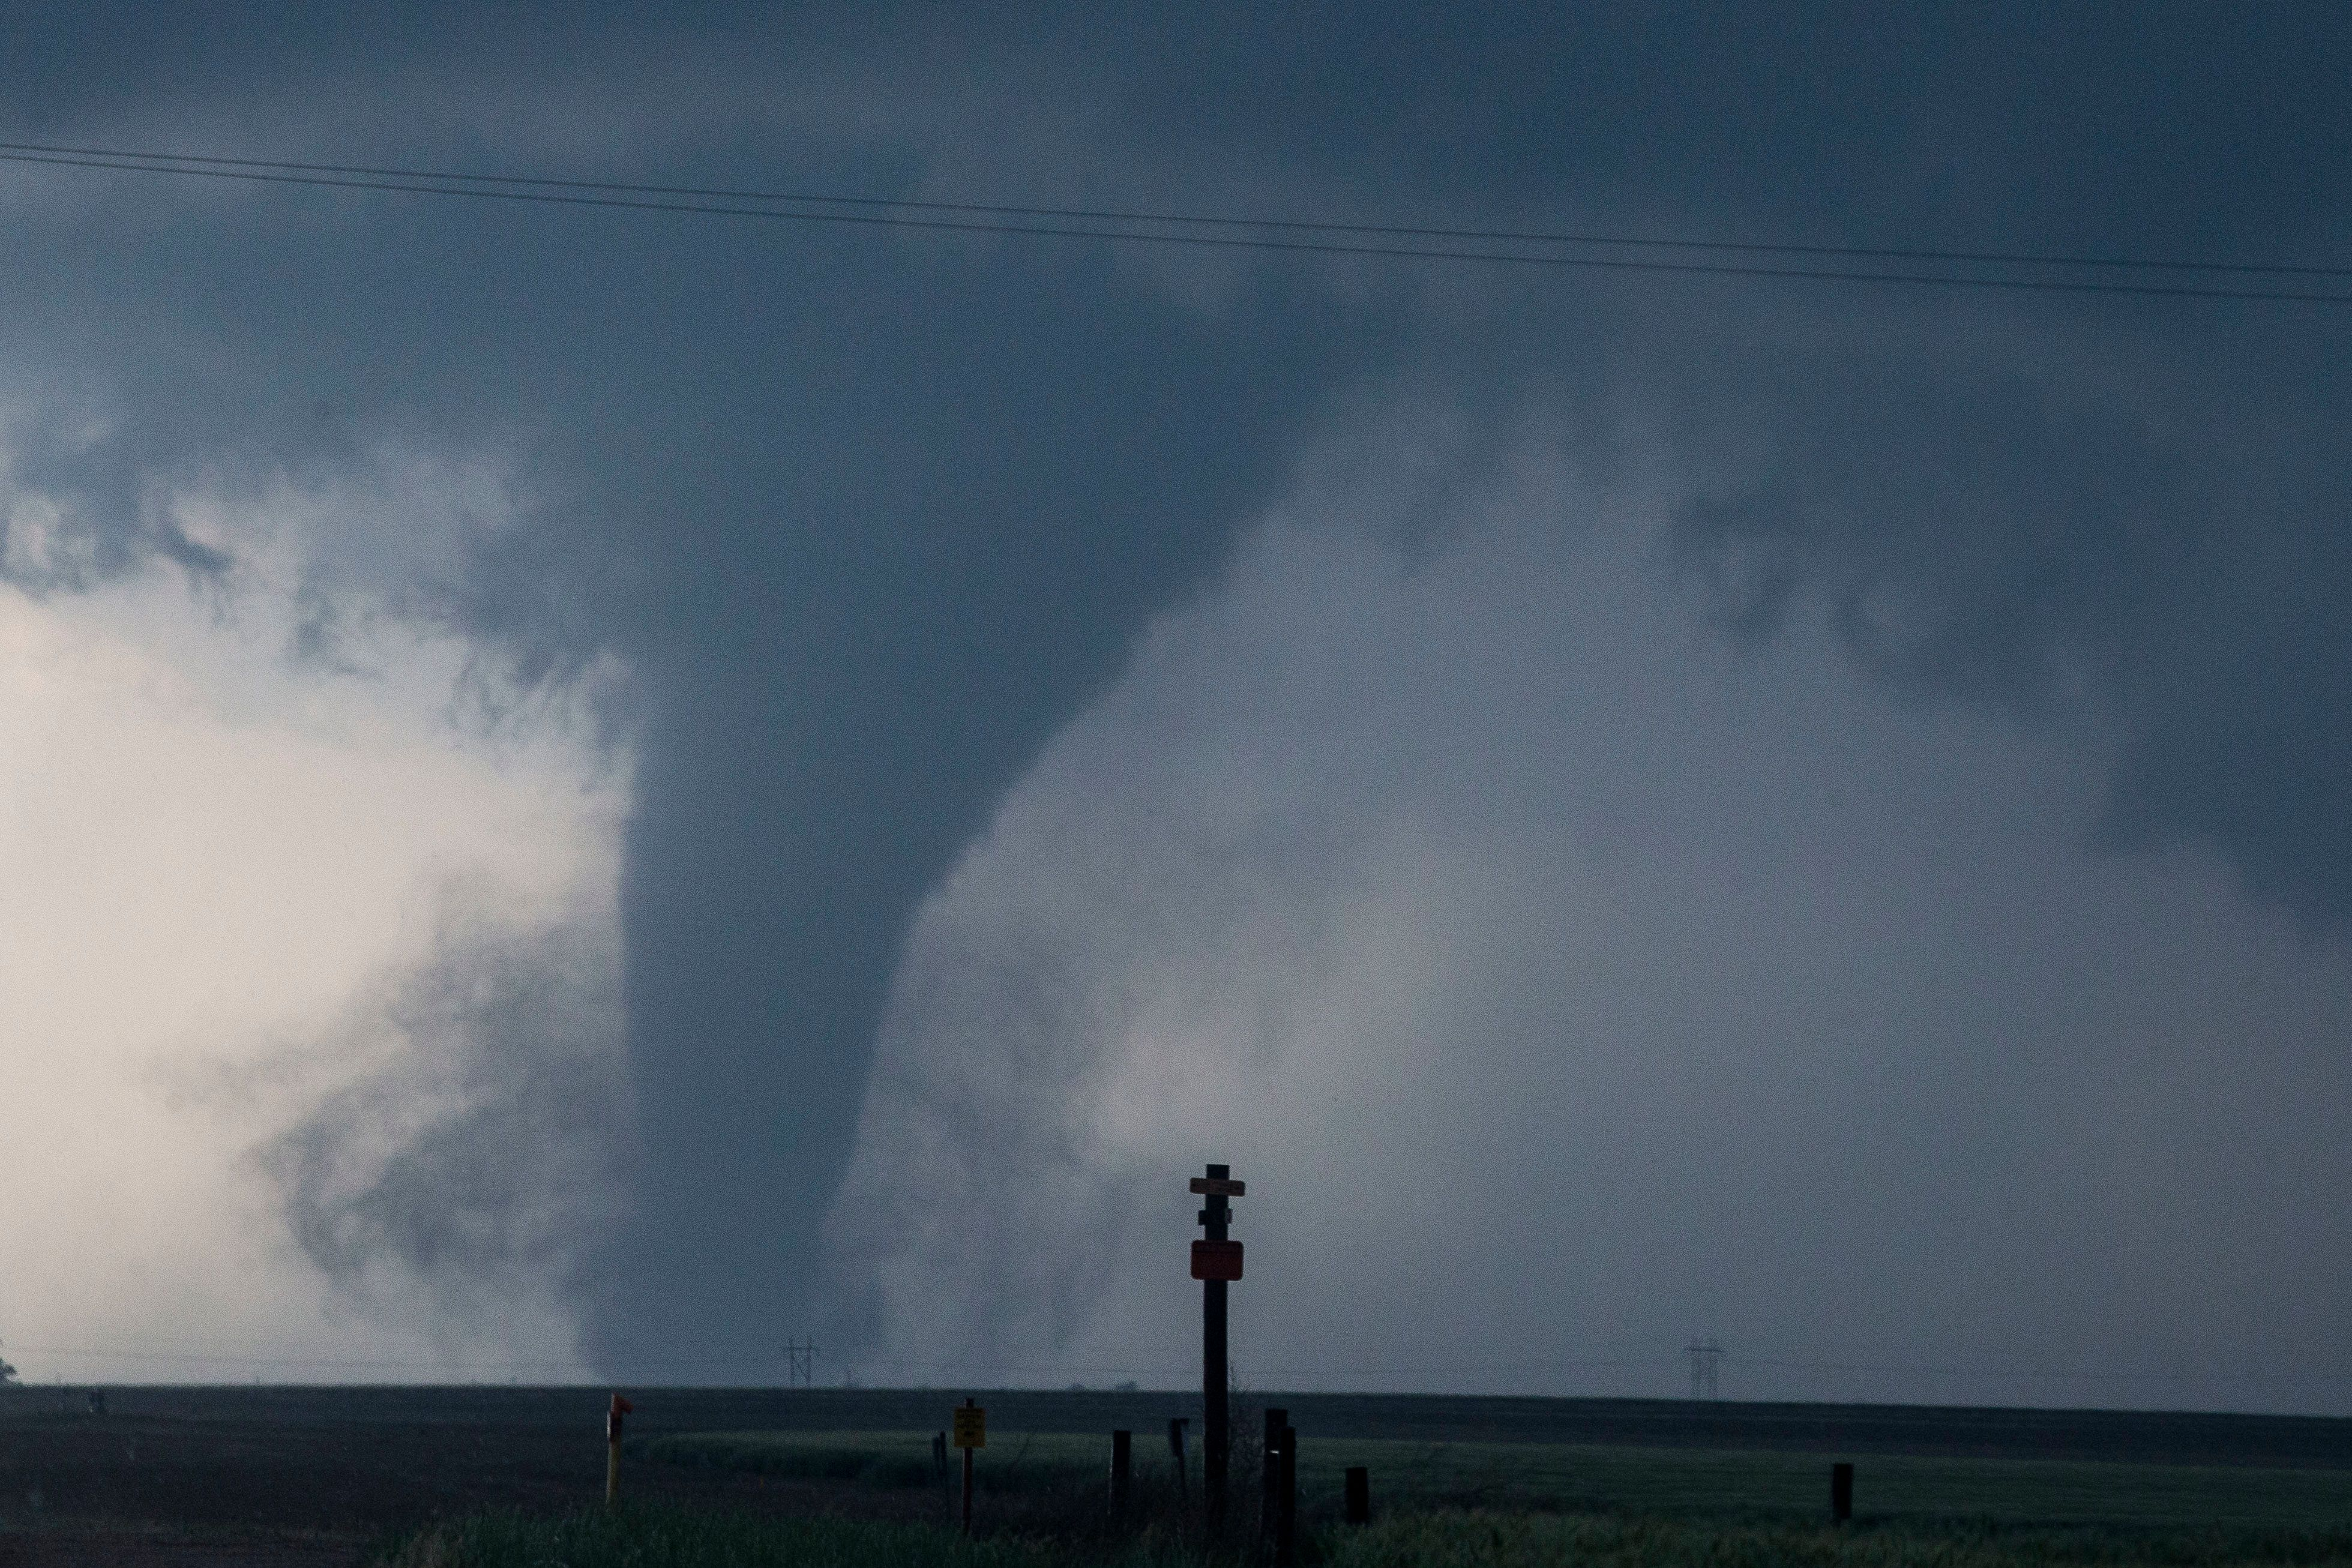 DODGE CITY, KS - MAY 24: A tornado is seen South of Dodge City, Kansas moving North on May 24, 2016 in Dodge City, Kansas.  About 30 tornadoes were reported on Tuesday in five different states from Michigan to Texas. Damage to homes and property was also reported in Ford County, Kansas. (Photo by Brian Davidson/Getty Images)